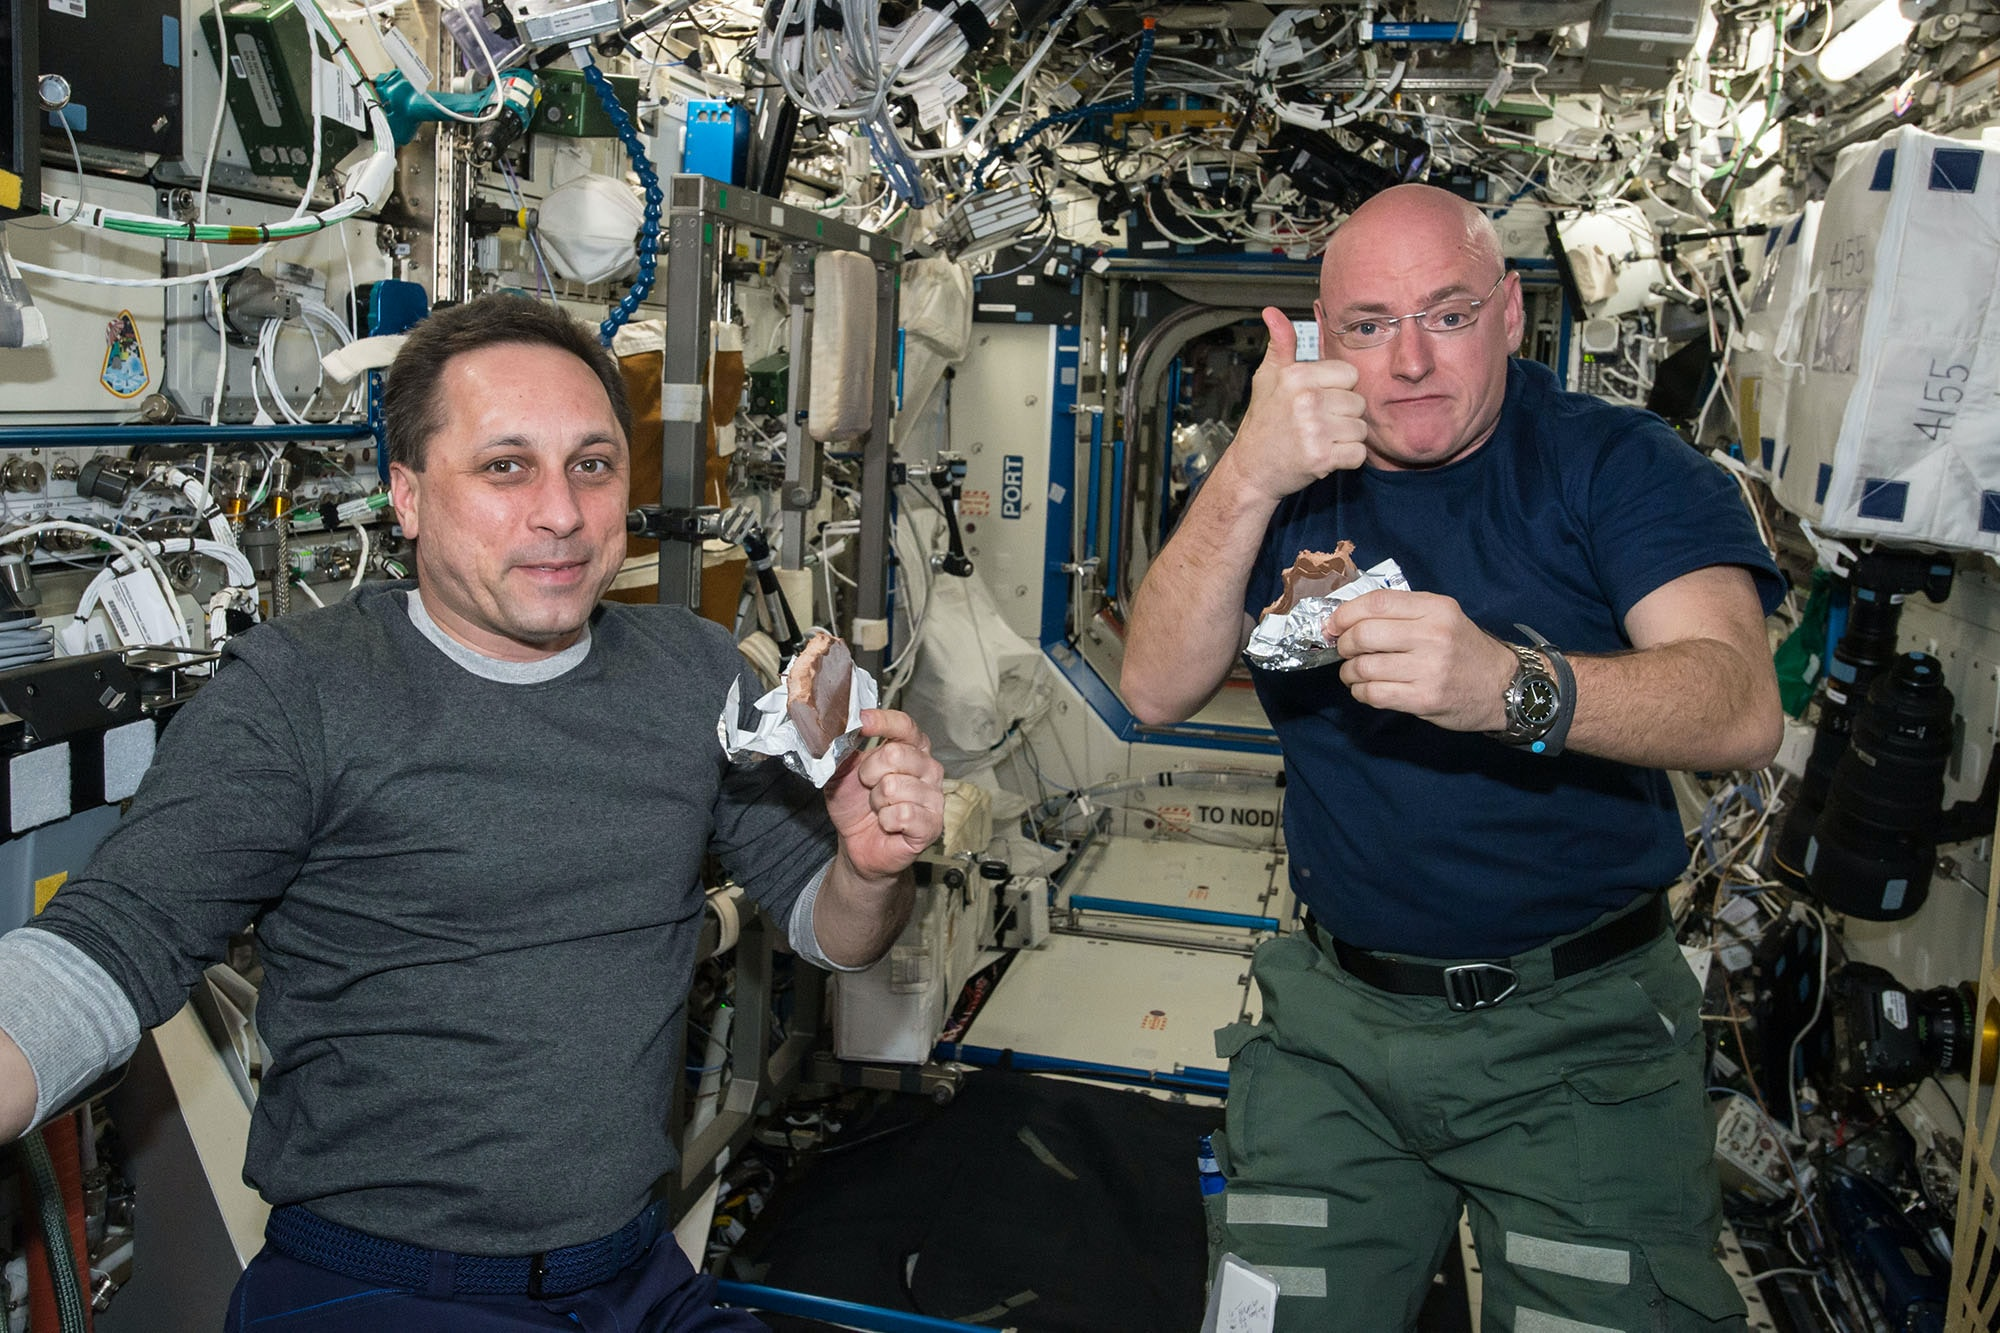 Scott Kelly ISS Speedmaster X-33 The Watches Worn By NASA Astronaut Scott Kelly, Holder Of New U.S. Spaceflight Endurance Record The Watches Worn By NASA Astronaut Scott Kelly, Holder Of New U.S. Spaceflight Endurance Record 01 ISS 43 Anton Shkaplerov and Scott Kelly in Destiny lab